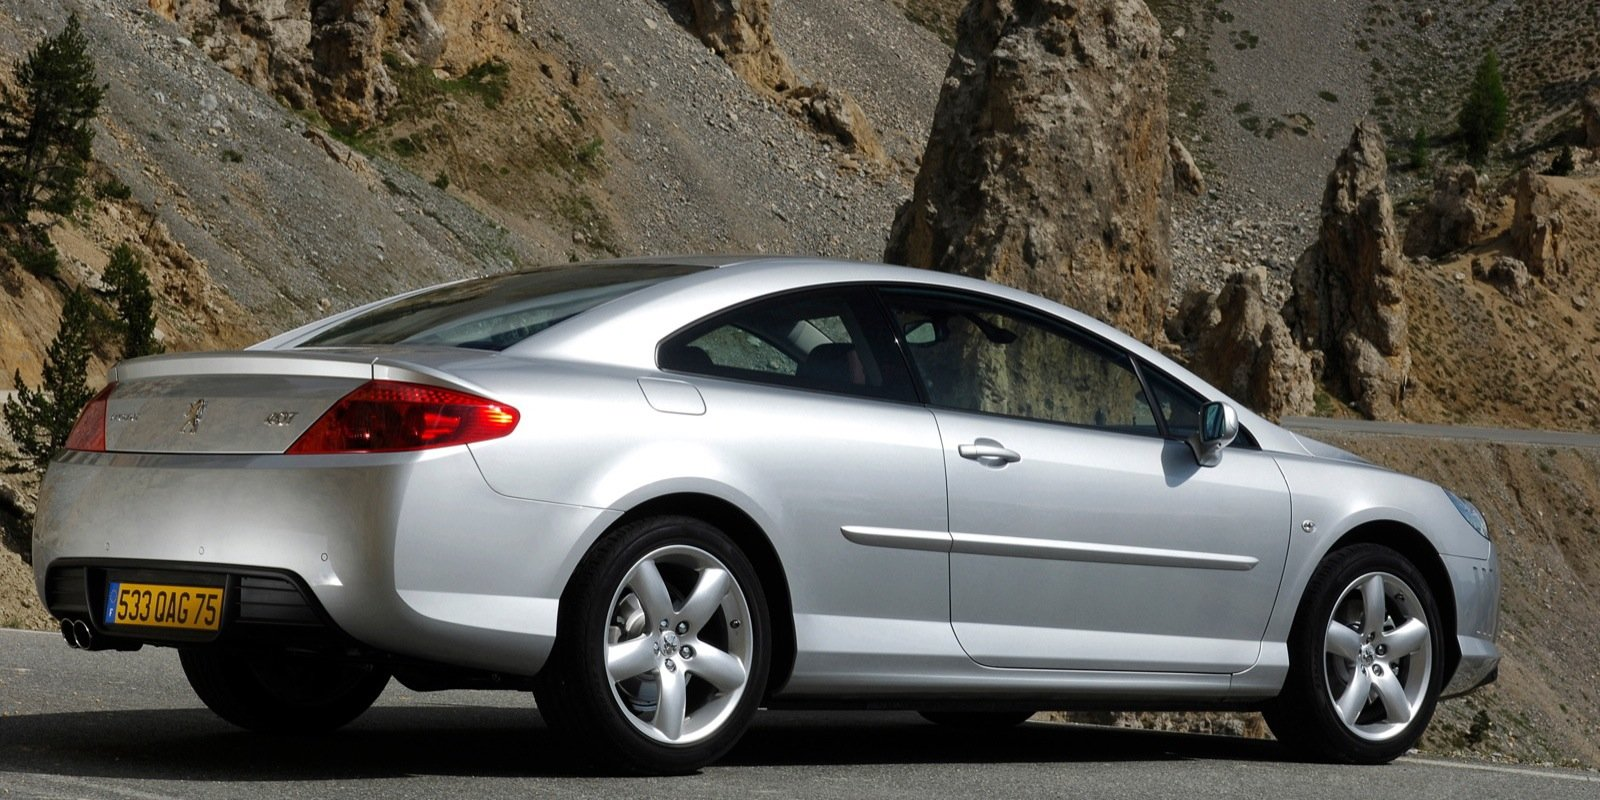 peugeot 407 coupe 2012 images #3